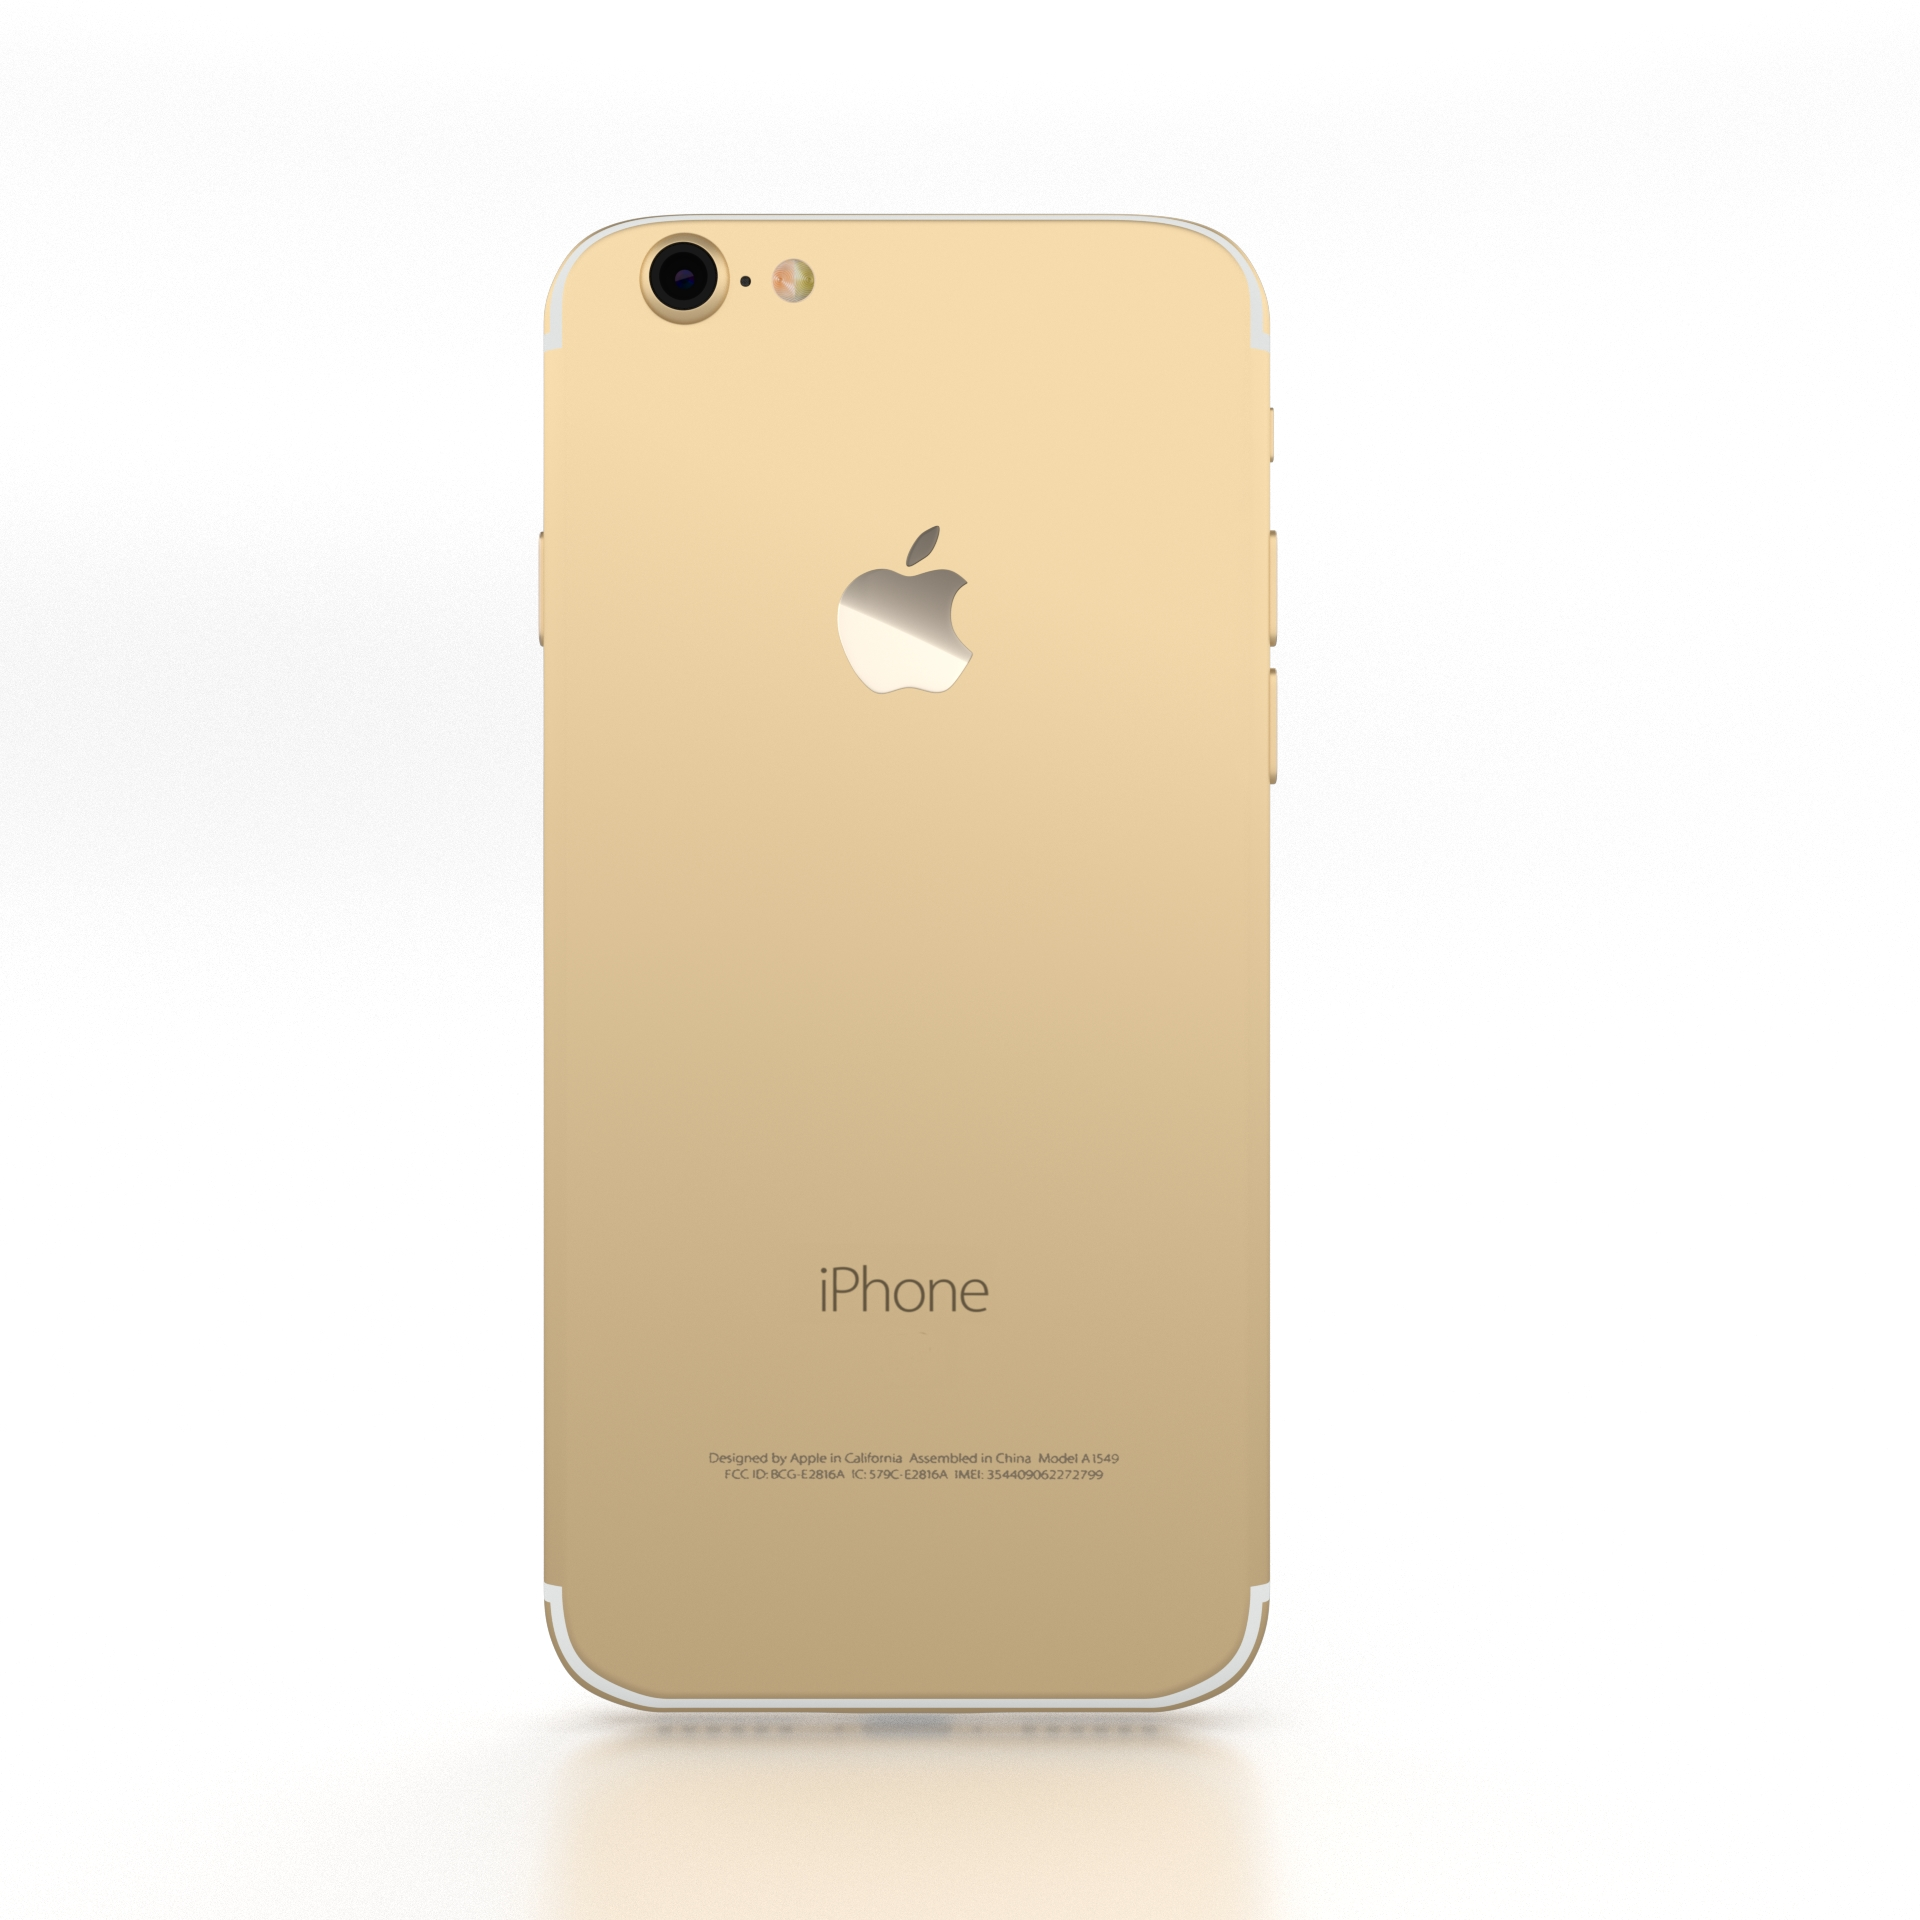 iphone 7 gold iphone 7 gold by dragosburian 3docean 11531